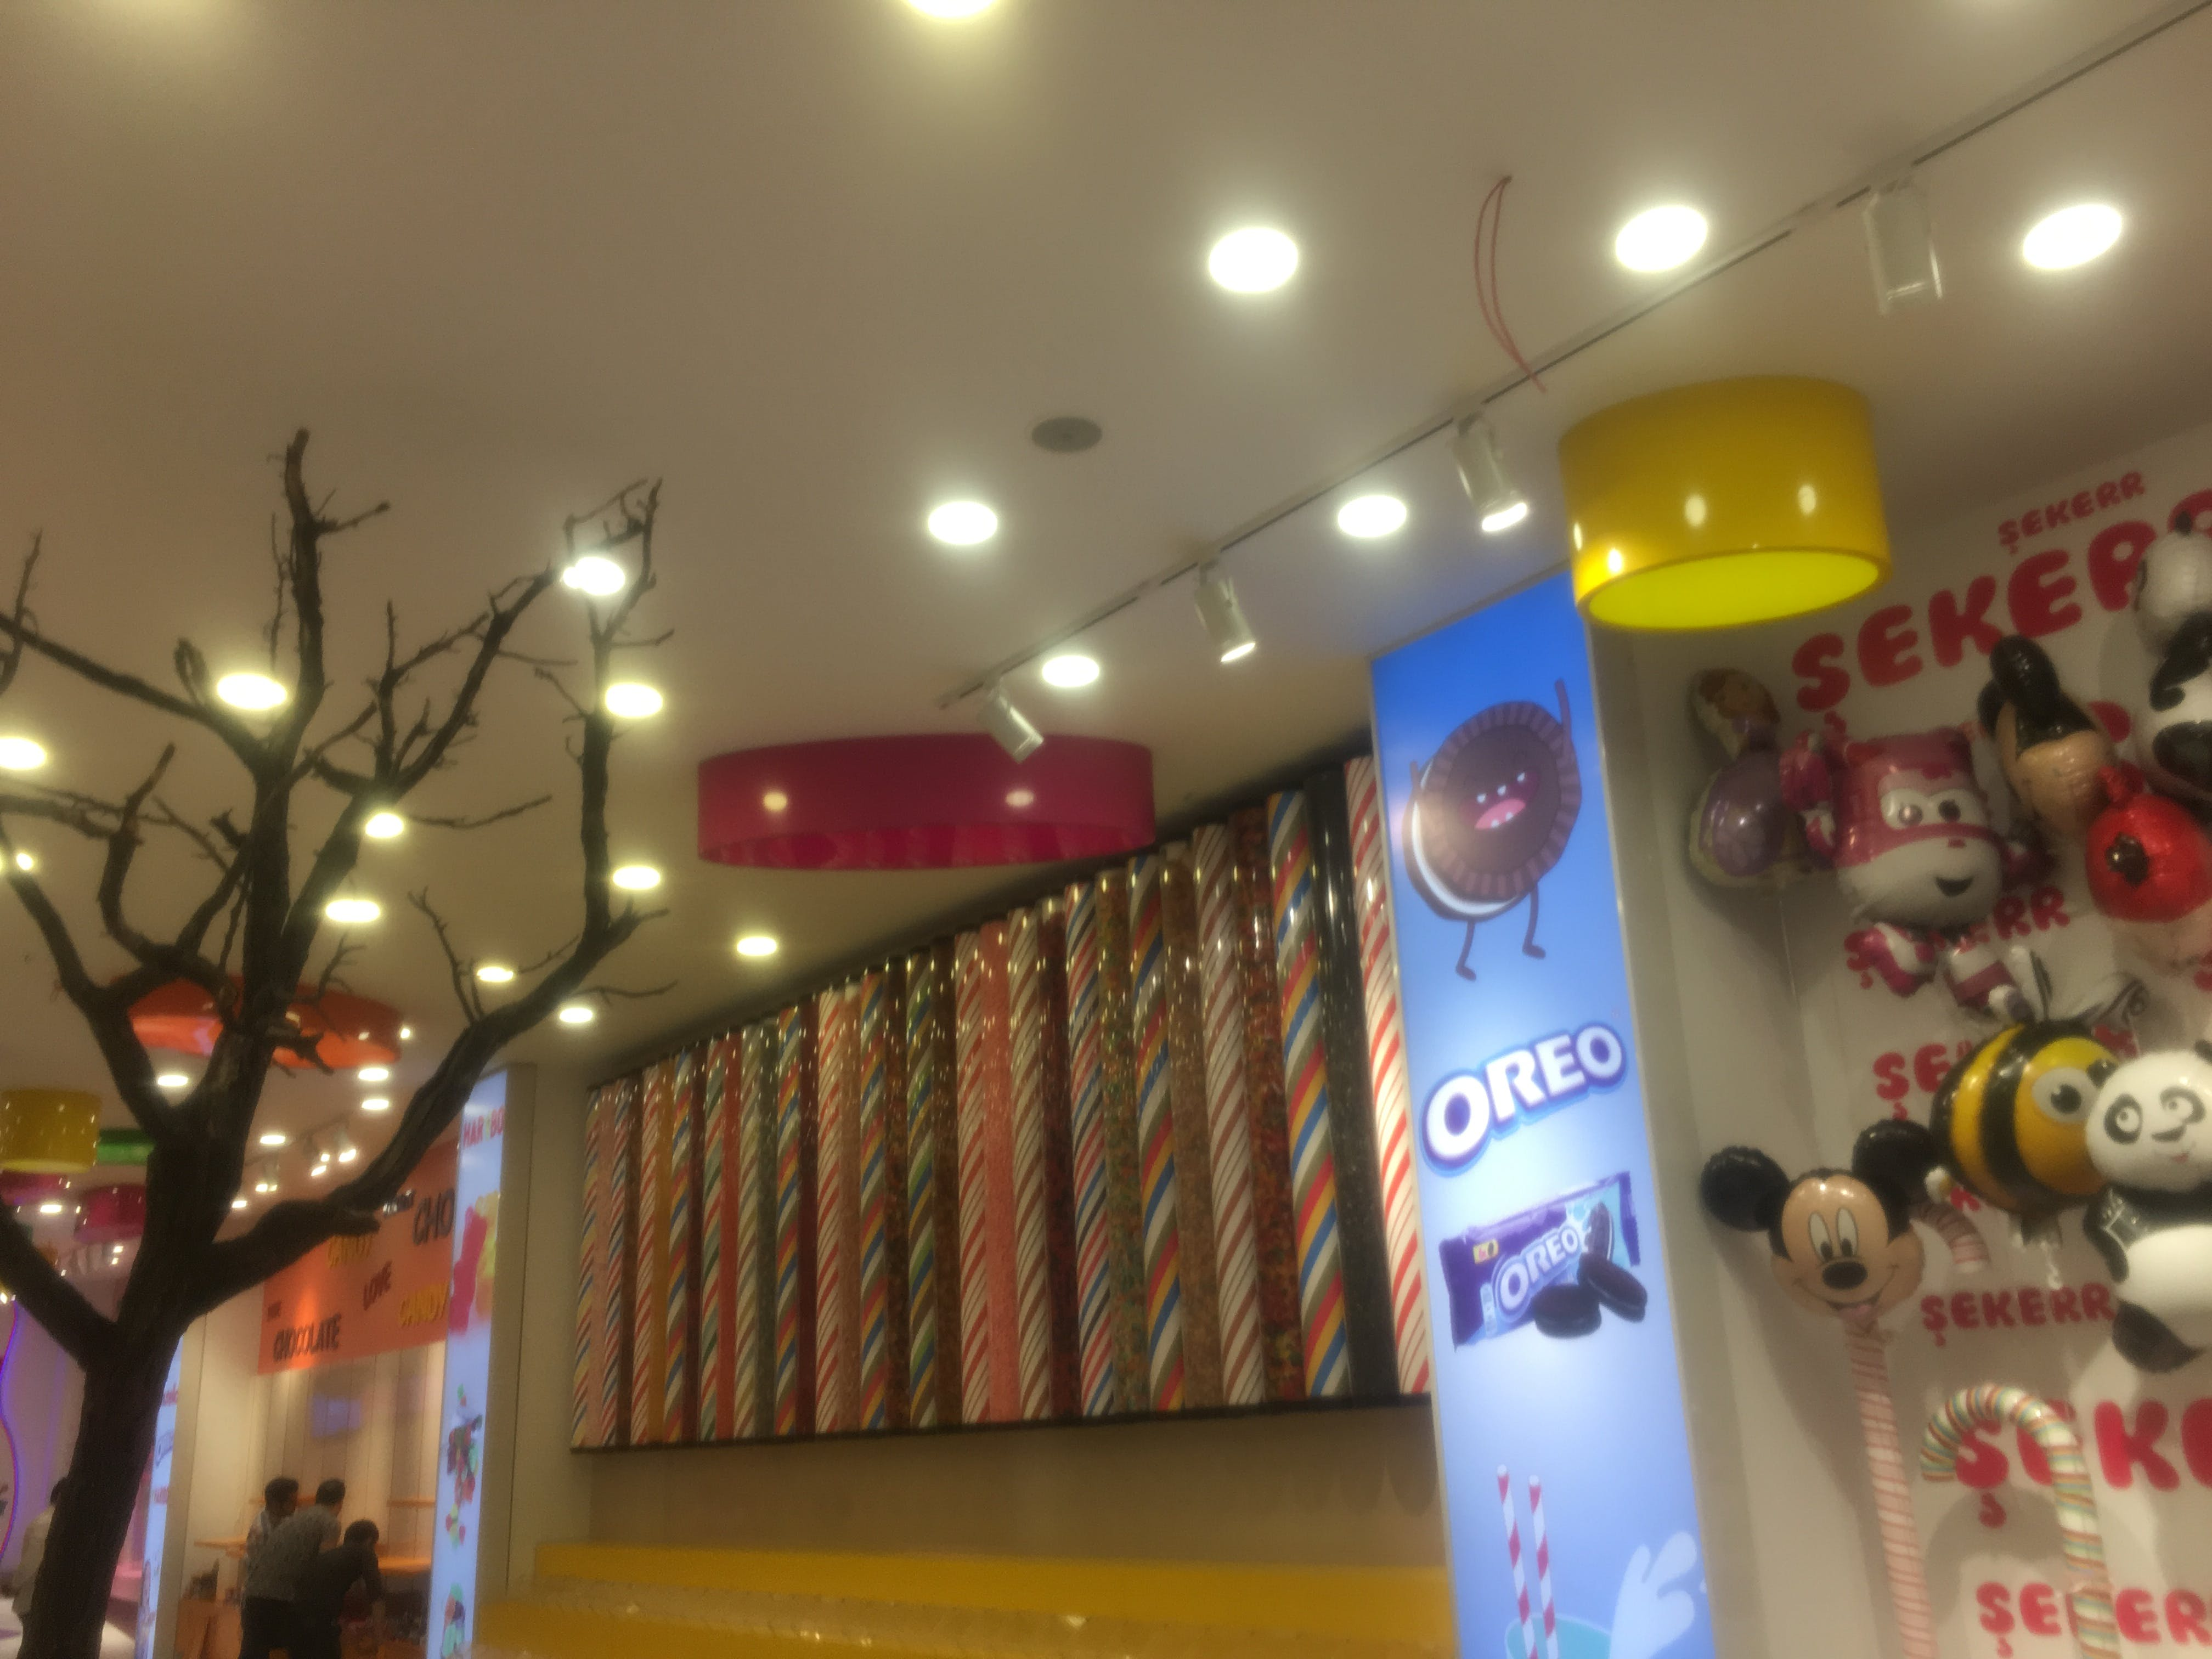 Mickey Mouse Balloon Beside Oreo Poster